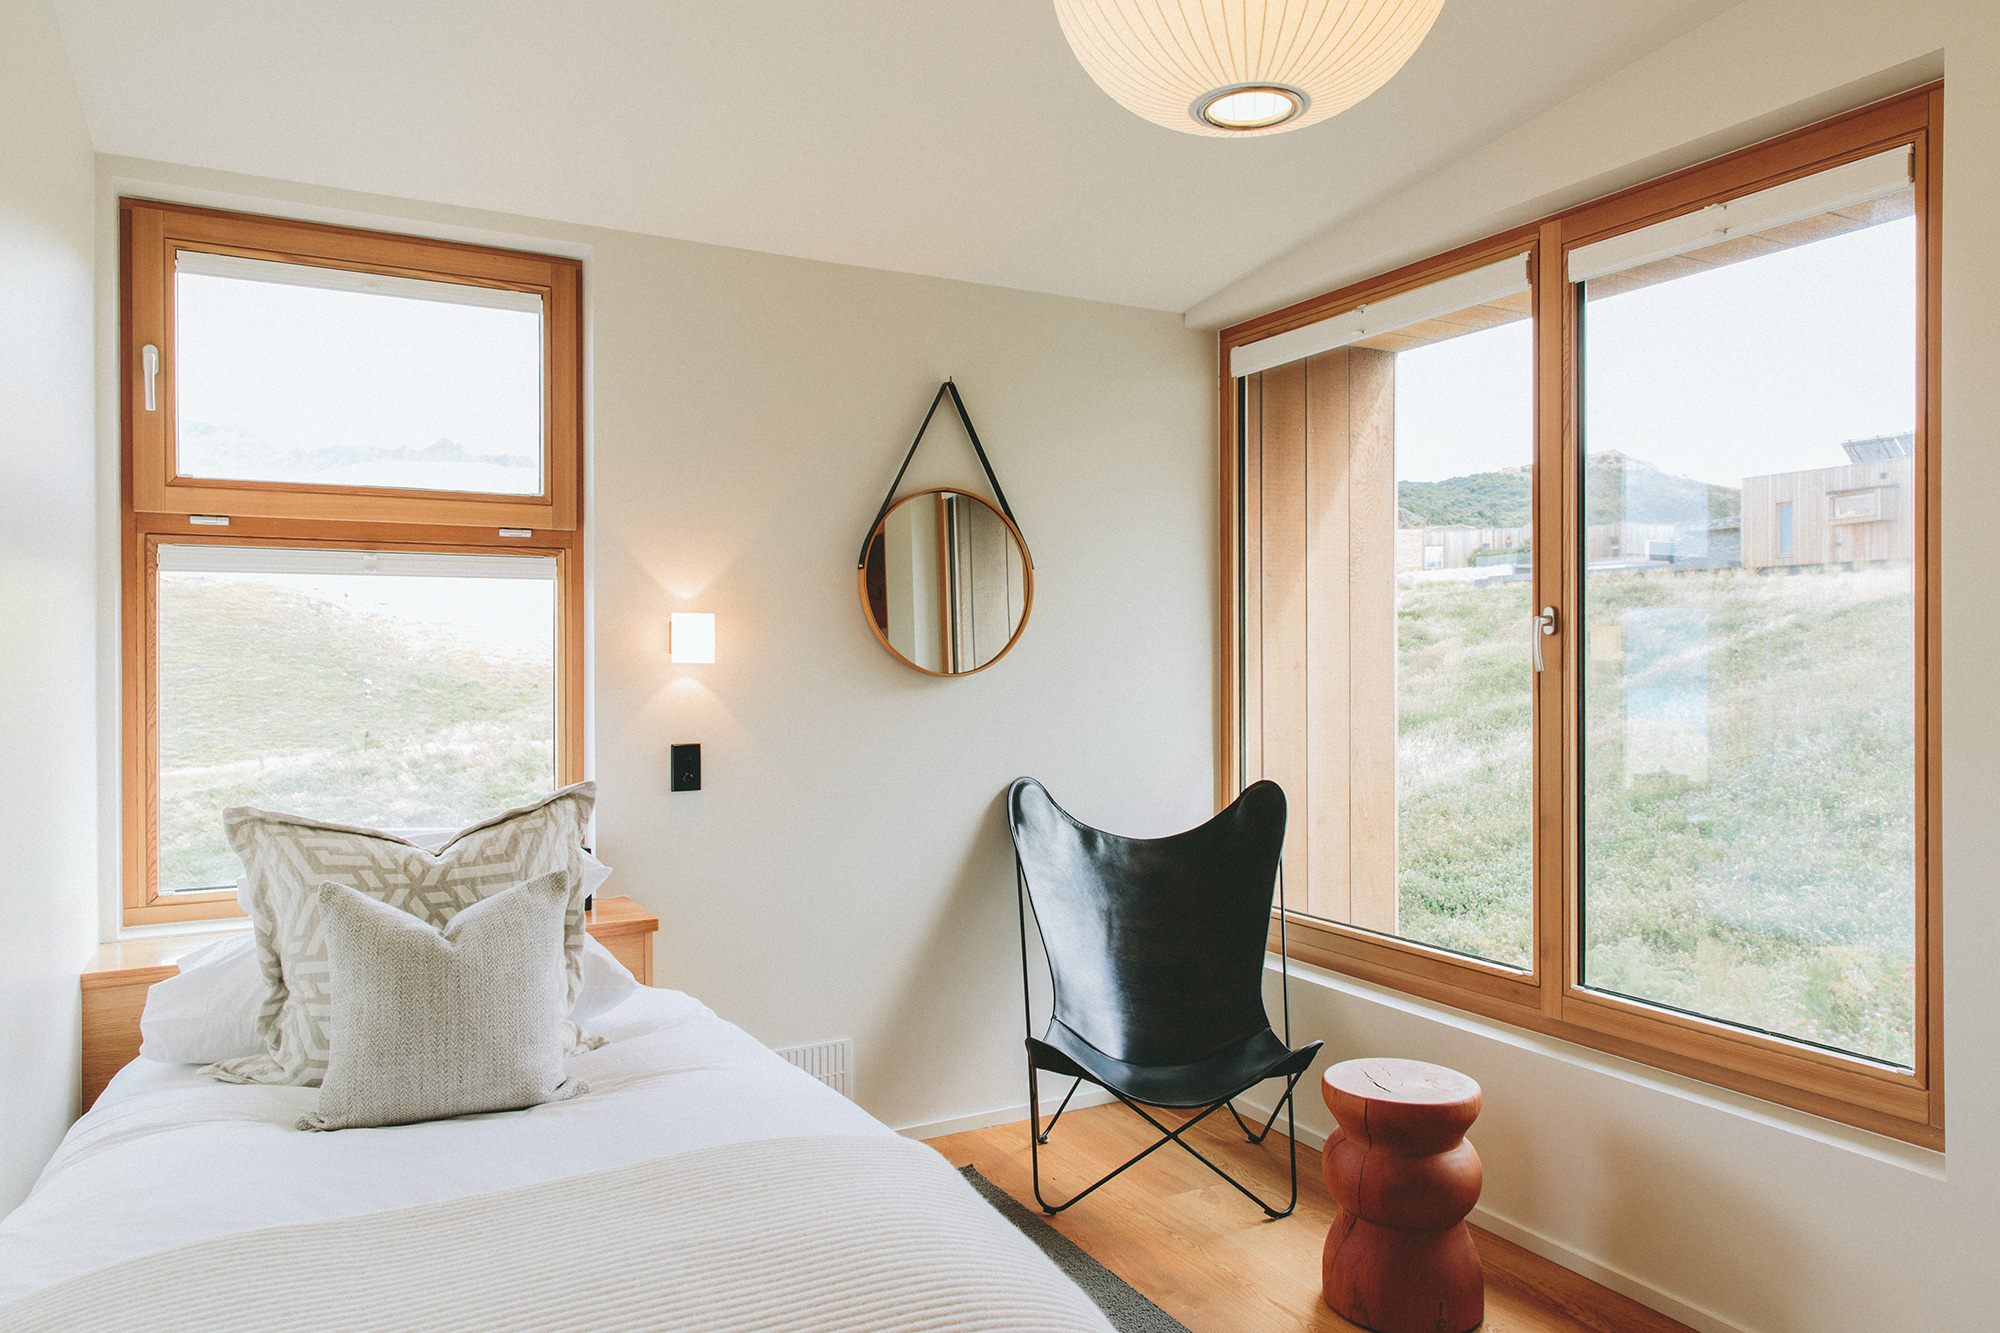 White bed with two gray pillows an windows looking out at a mountain view.